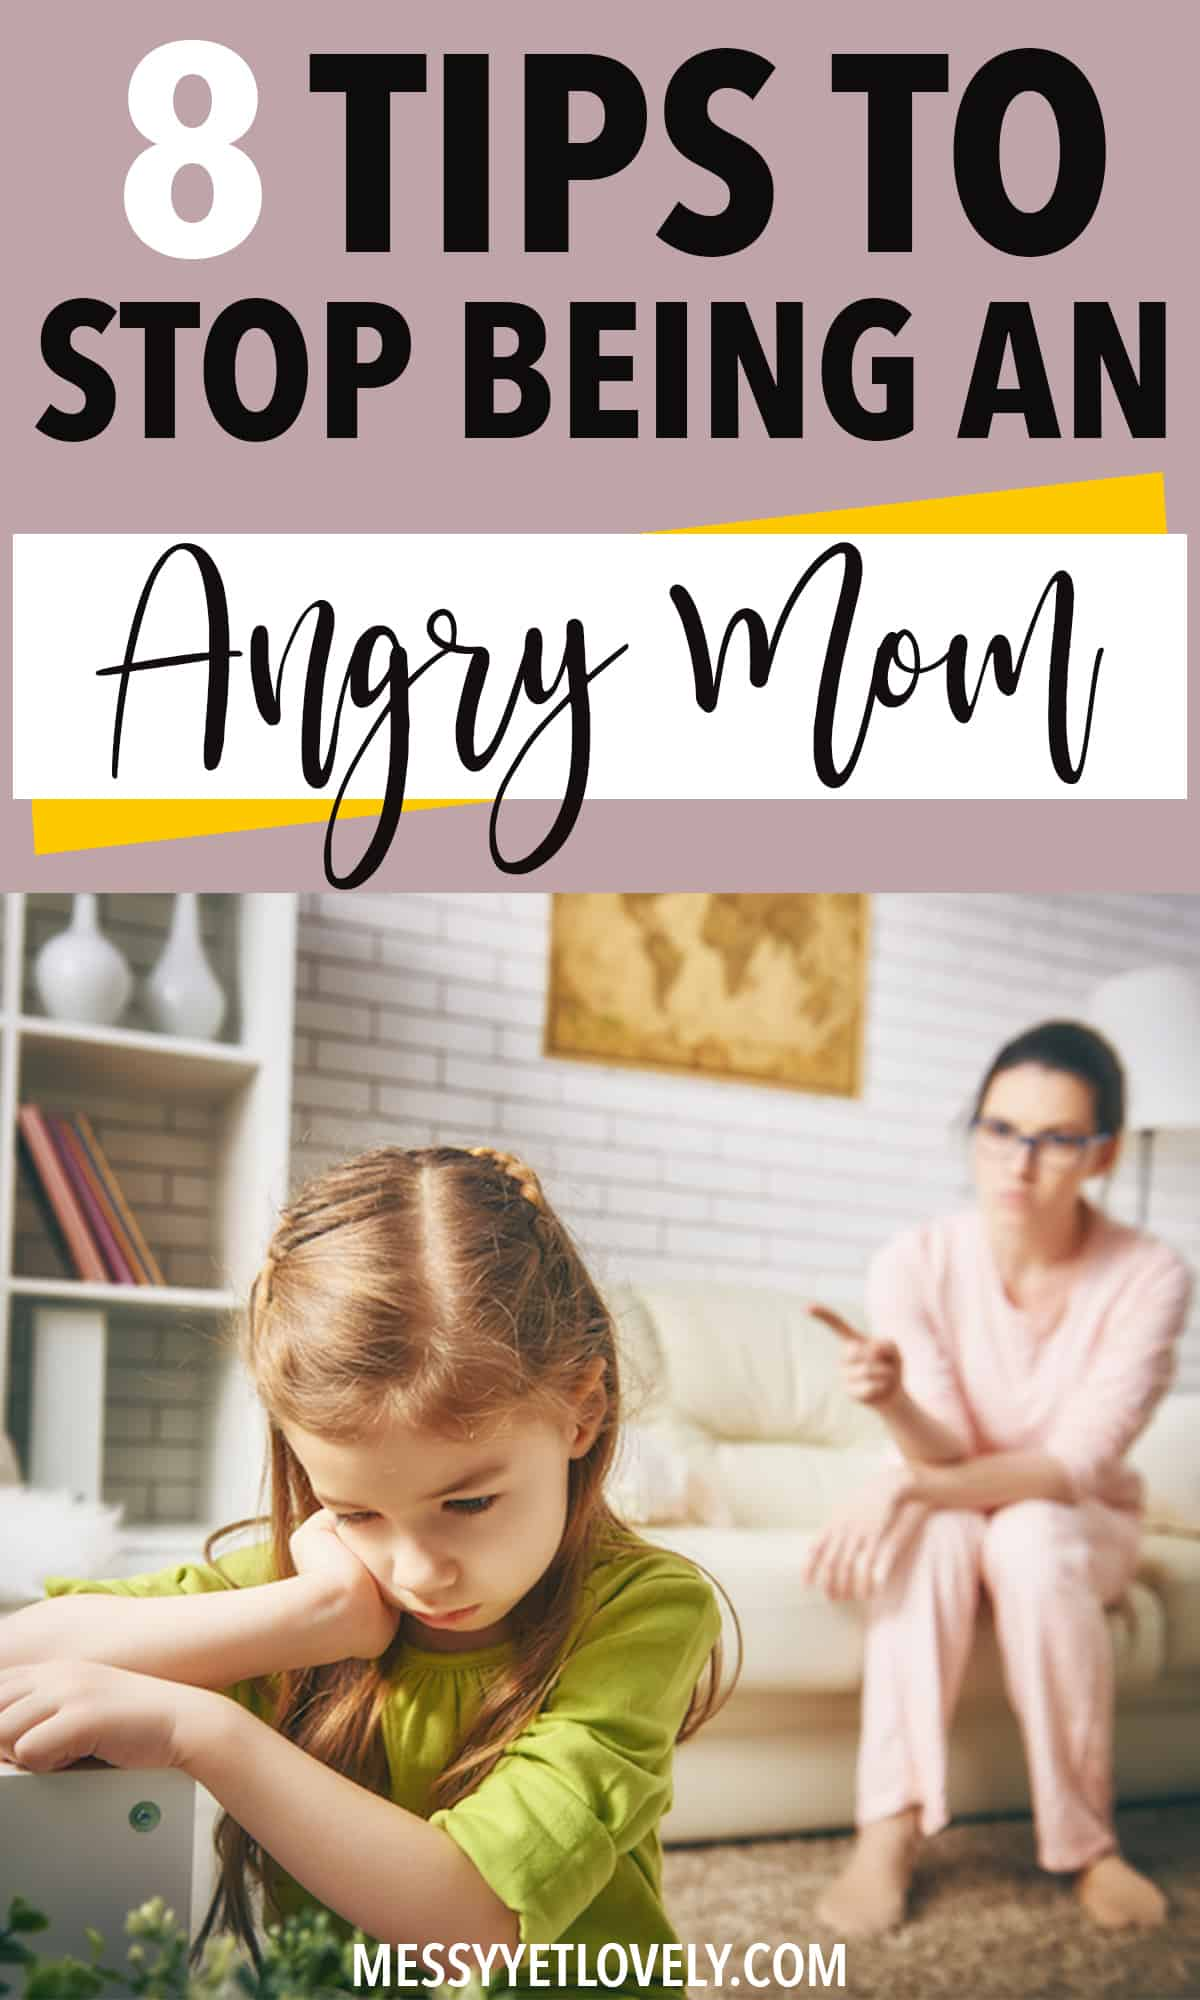 Controlling anger as a mom is important to build a healthy relationship with kids. Here are 8 tips to control anger with kids.